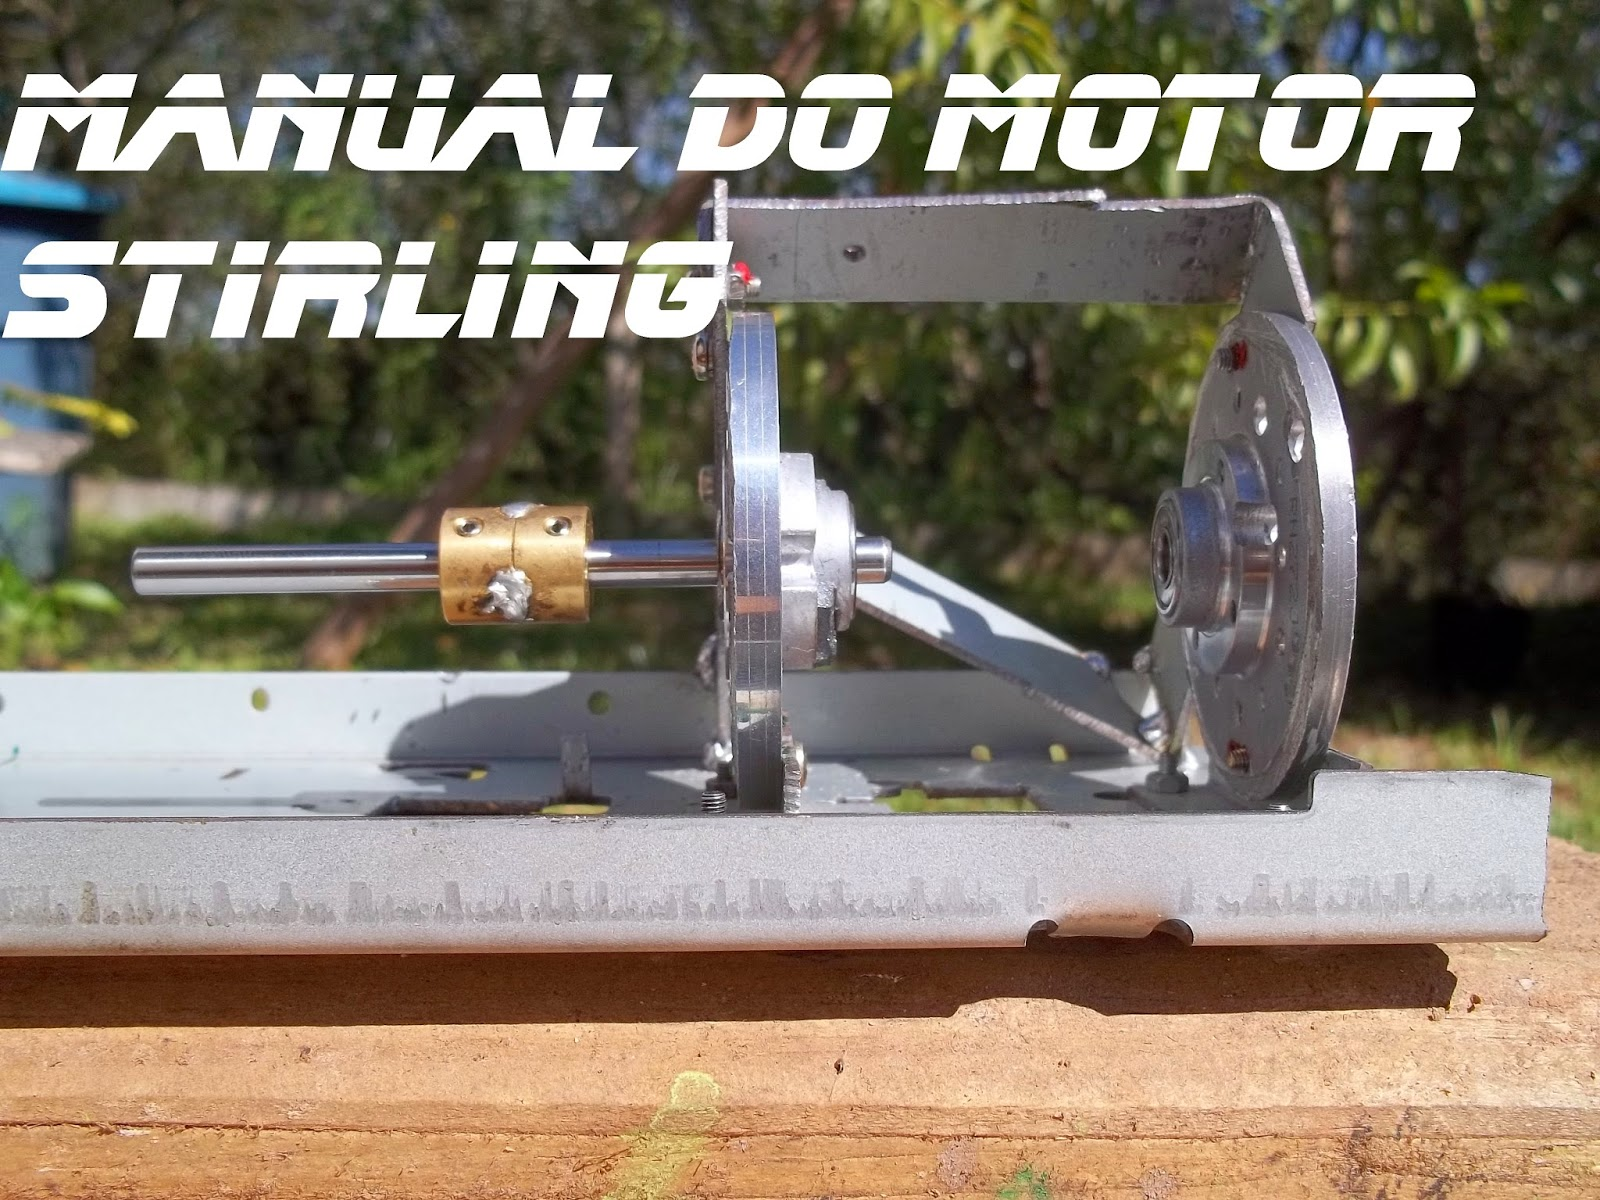 Cabeçote de vídeo cassete montado sobre a base do motor, Manual do motor Stirling